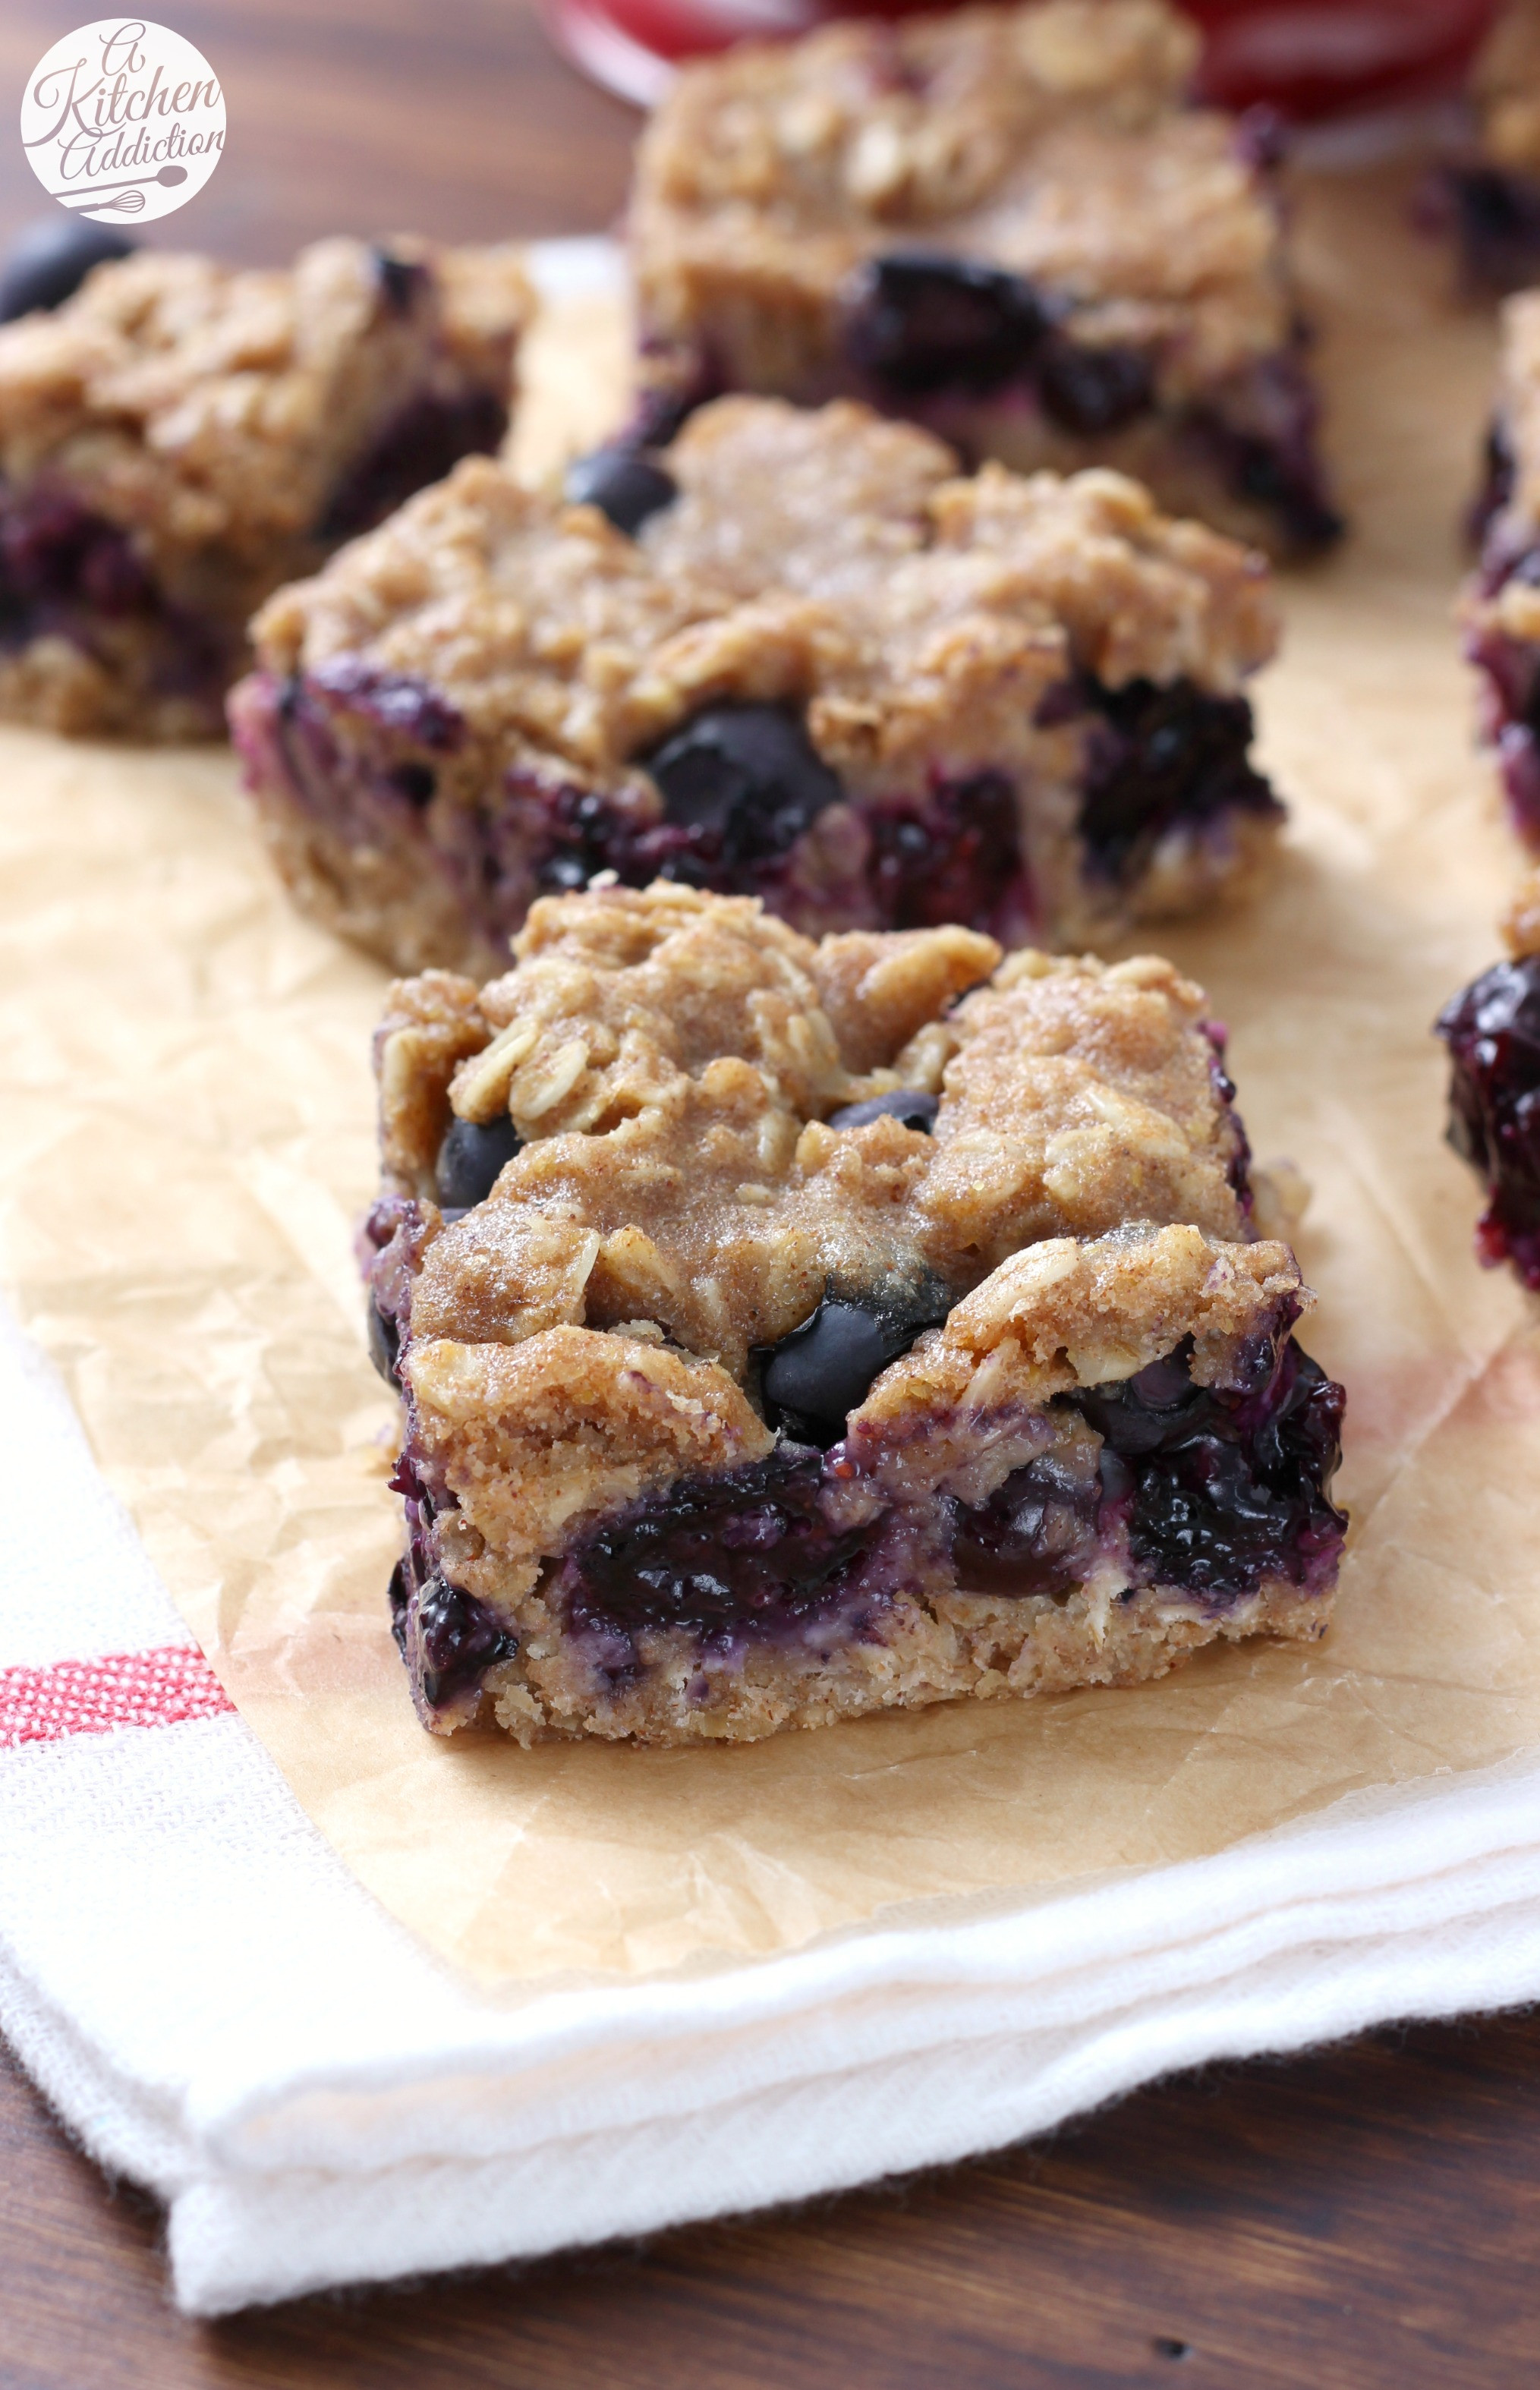 Healthy Oat Snacks  Blueberry Oat Snack Bars A Kitchen Addiction